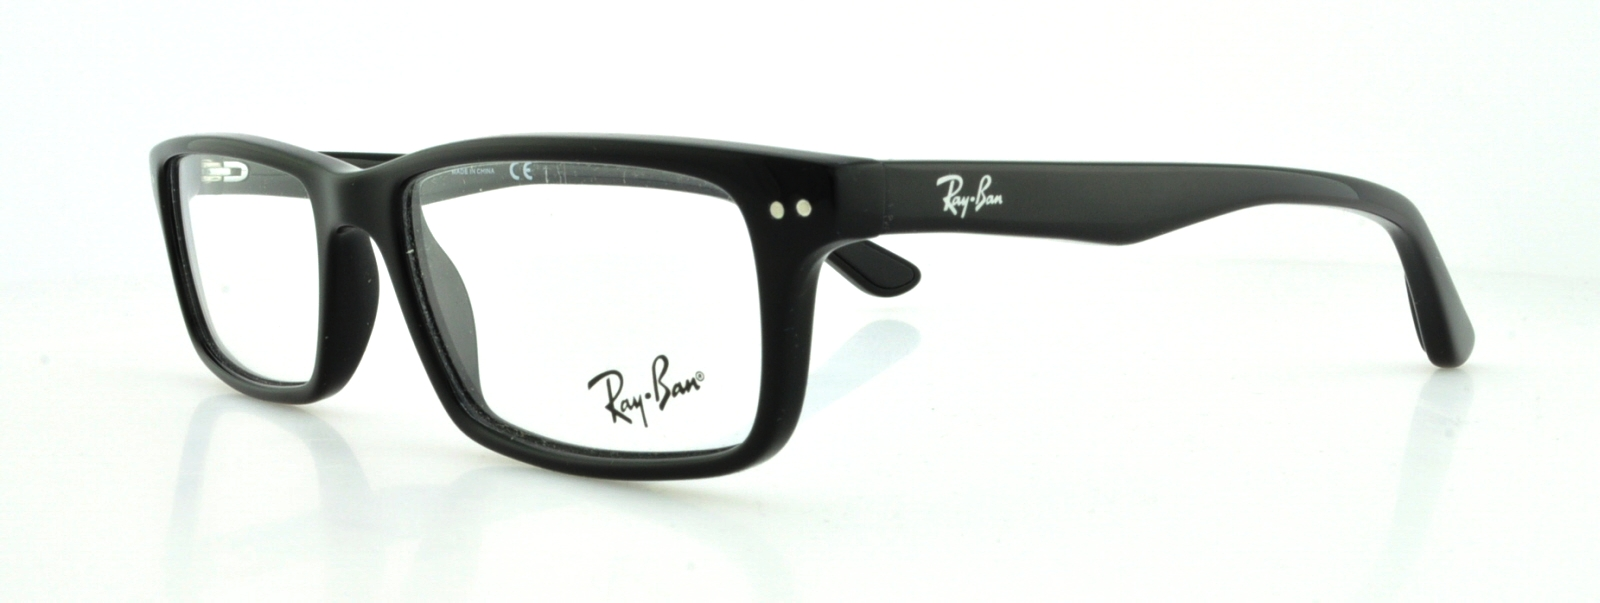 Picture of Ray Ban RX5277